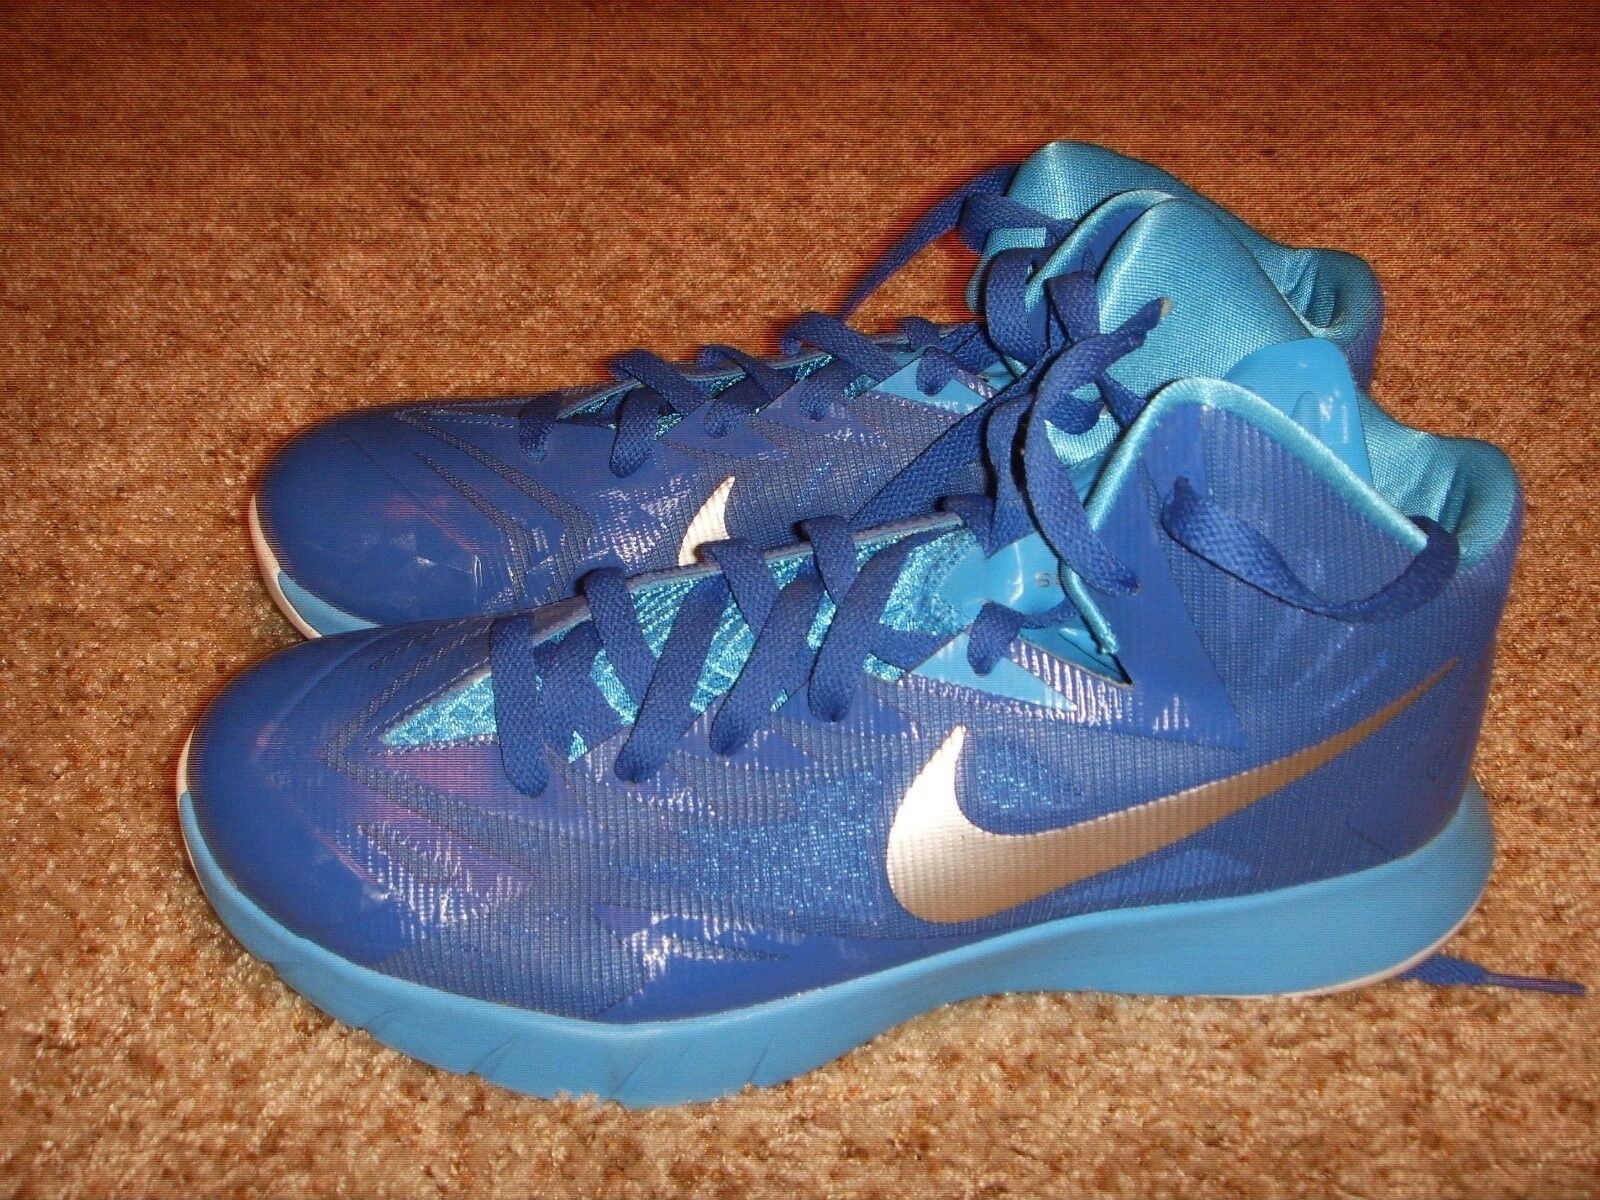 Nike Lunar Hyperquickness TB Basketball Shoes 652775-406 Blue Mens Comfortable The most popular shoes for men and women